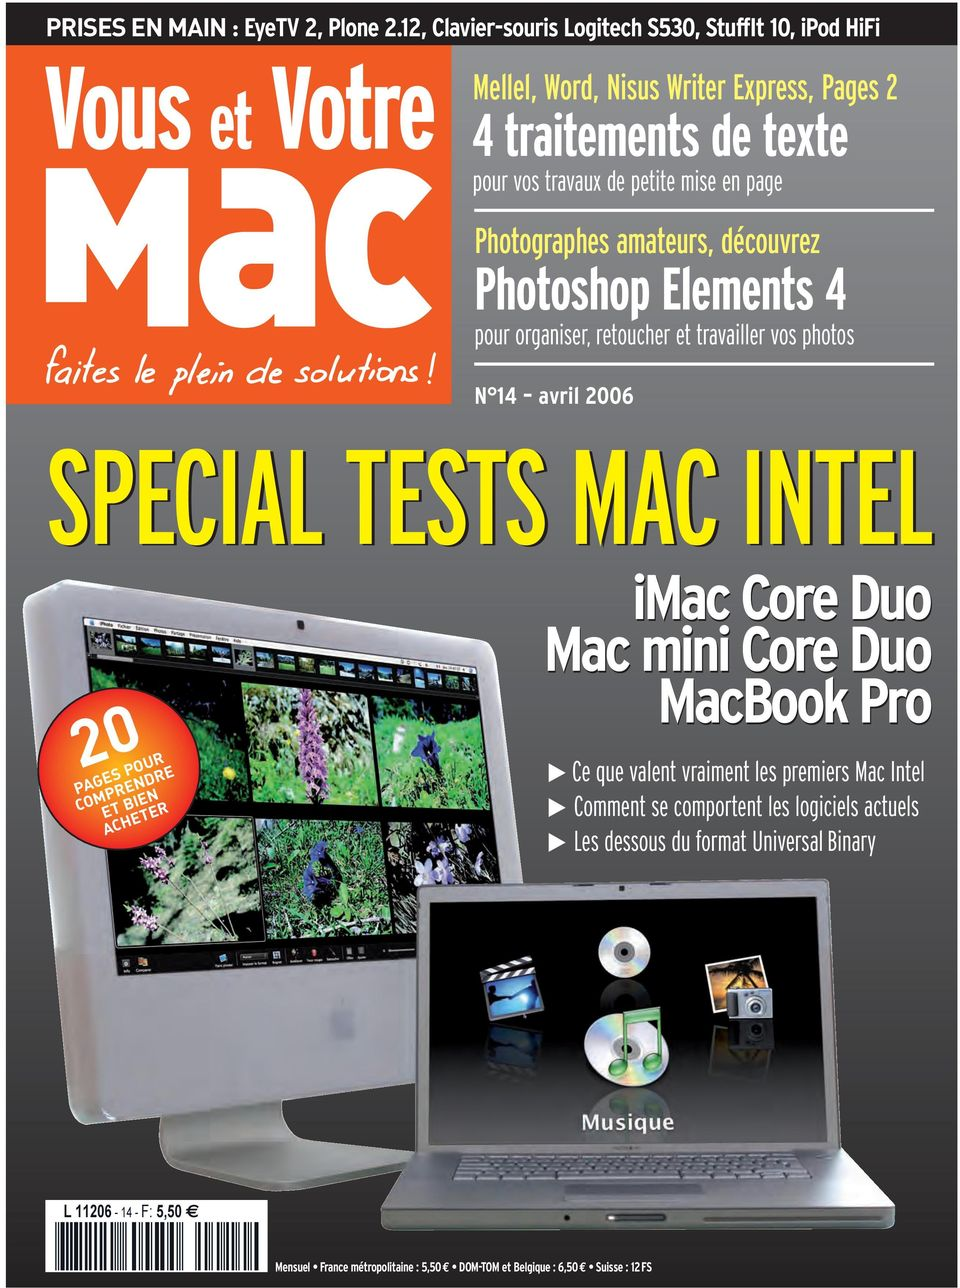 page Photographes amateurs, découvrez Photoshop Elements 4 pour organiser, retoucher et travailler vos photos N 14 avril 2006 SPECIAL TESTS MAC INTEL 20 PAGES